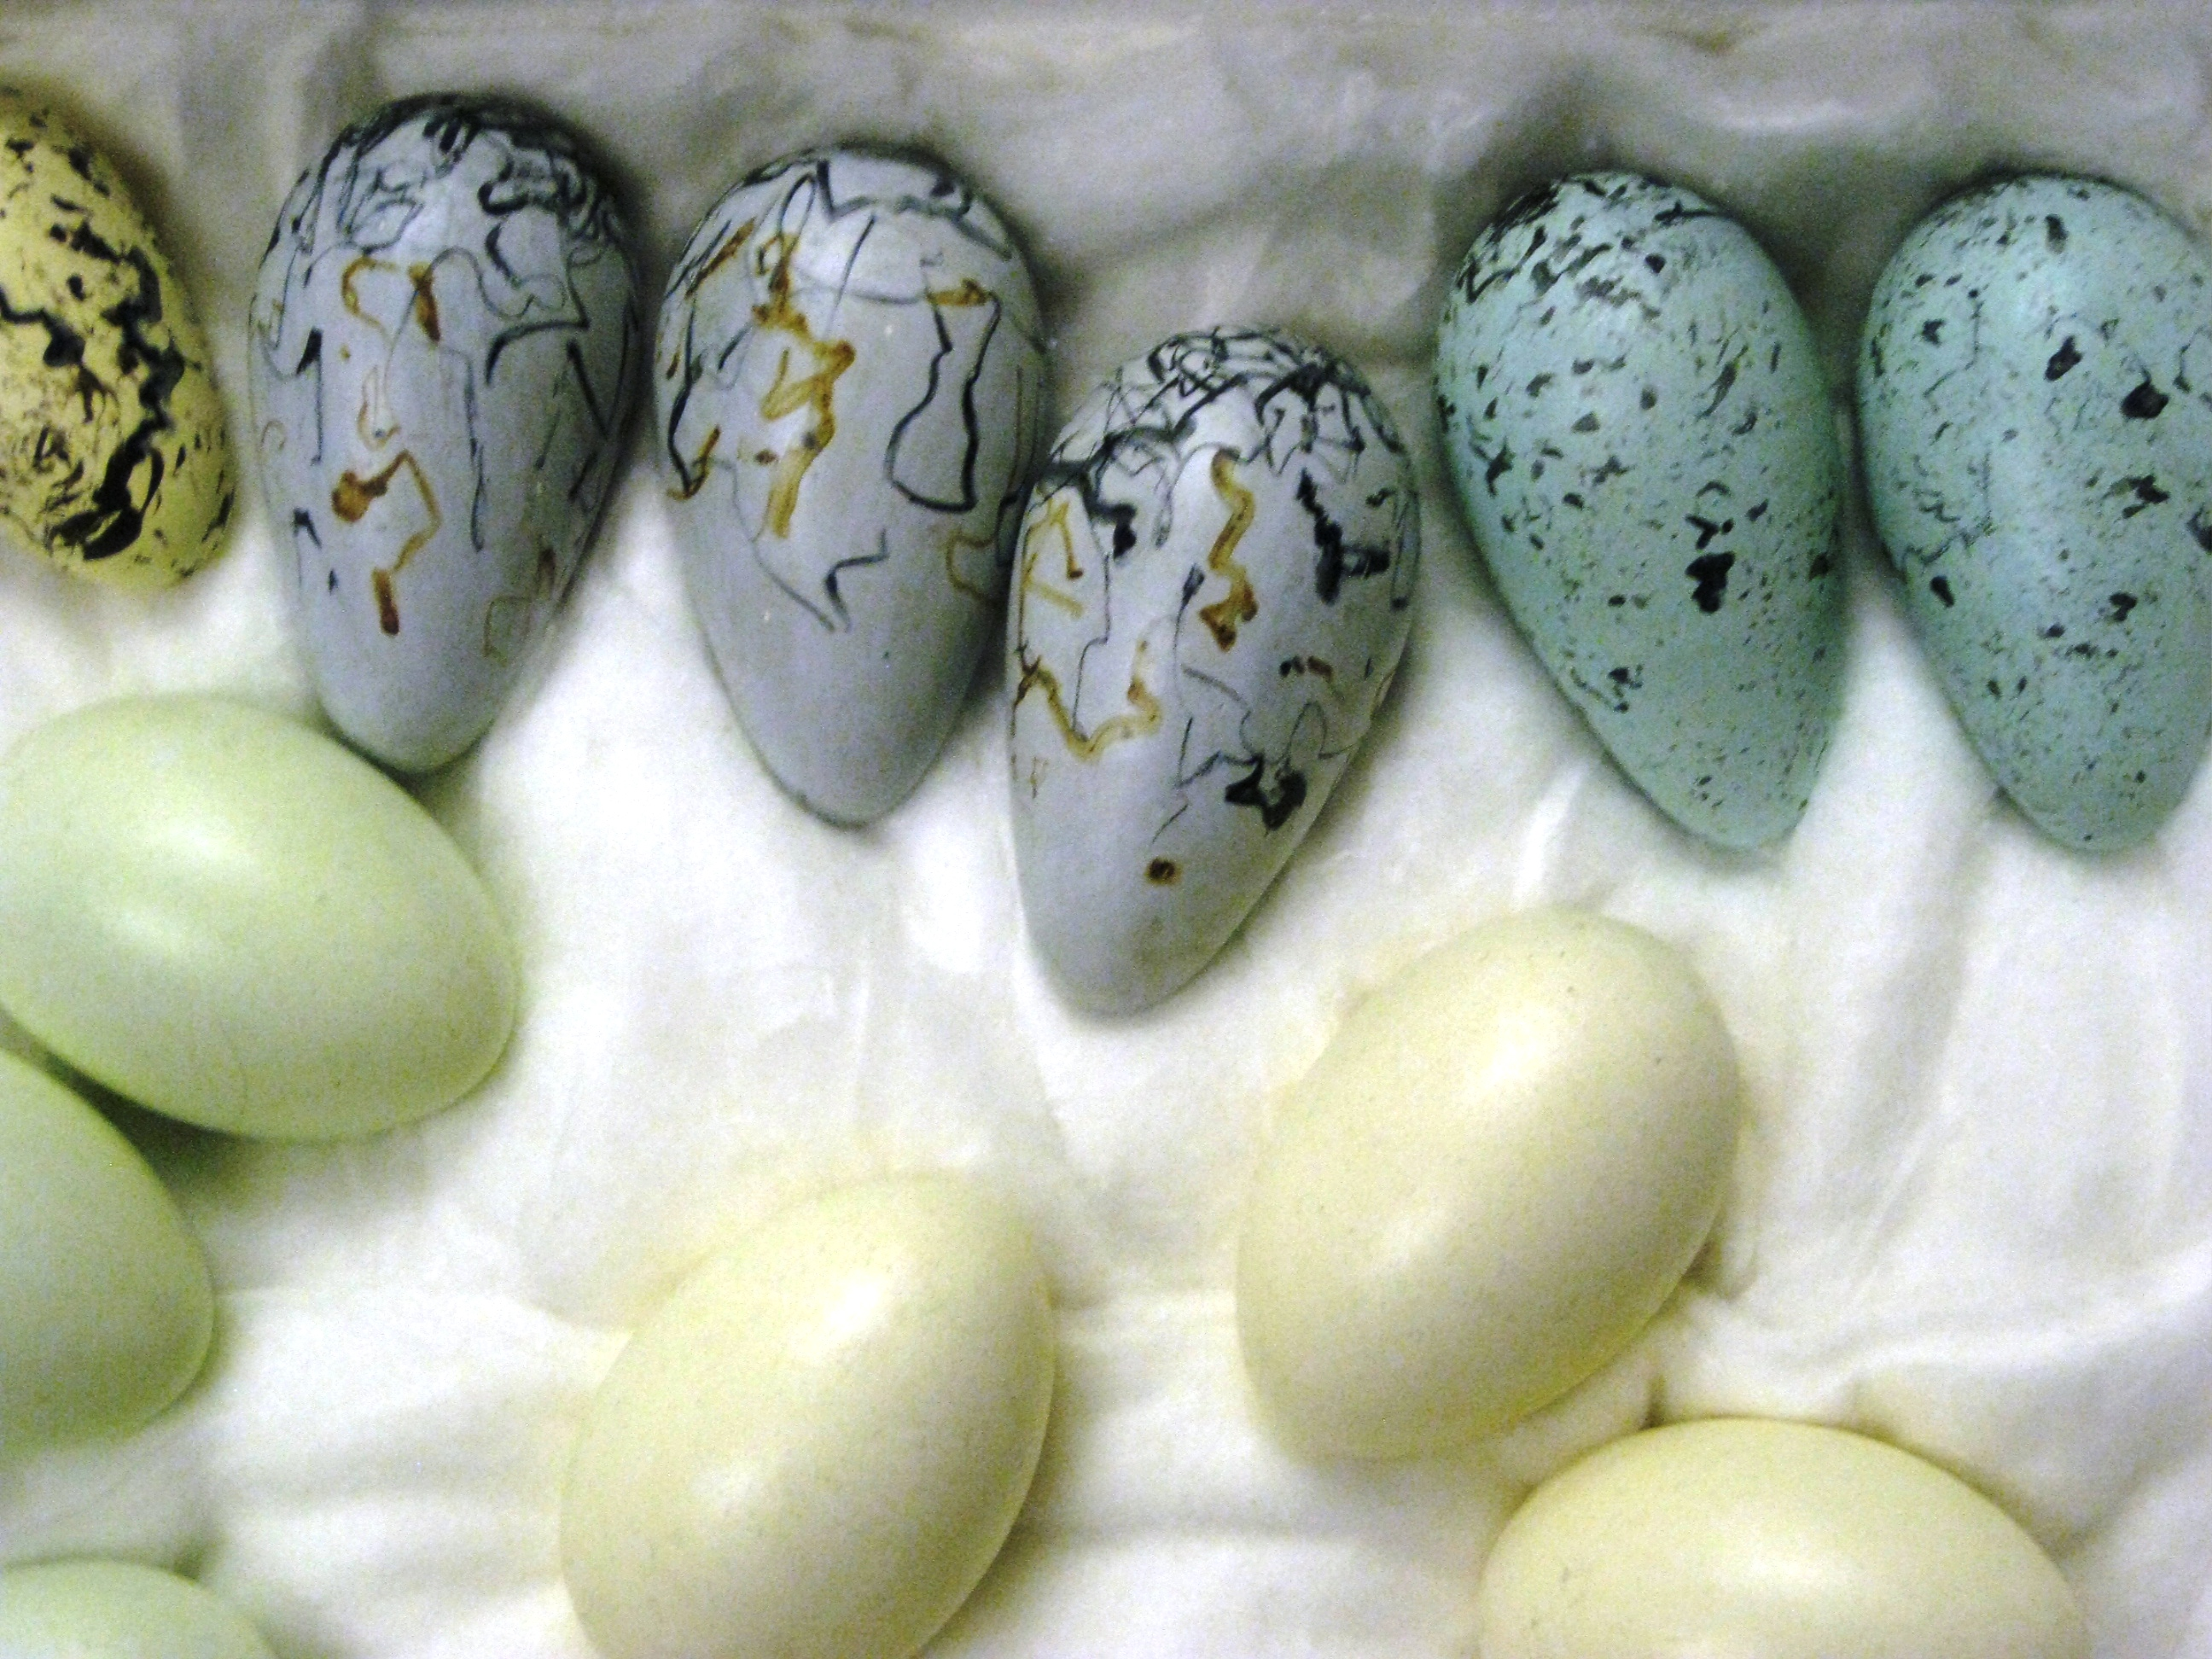 Porcelain eggs. Photo by Caroline Banks